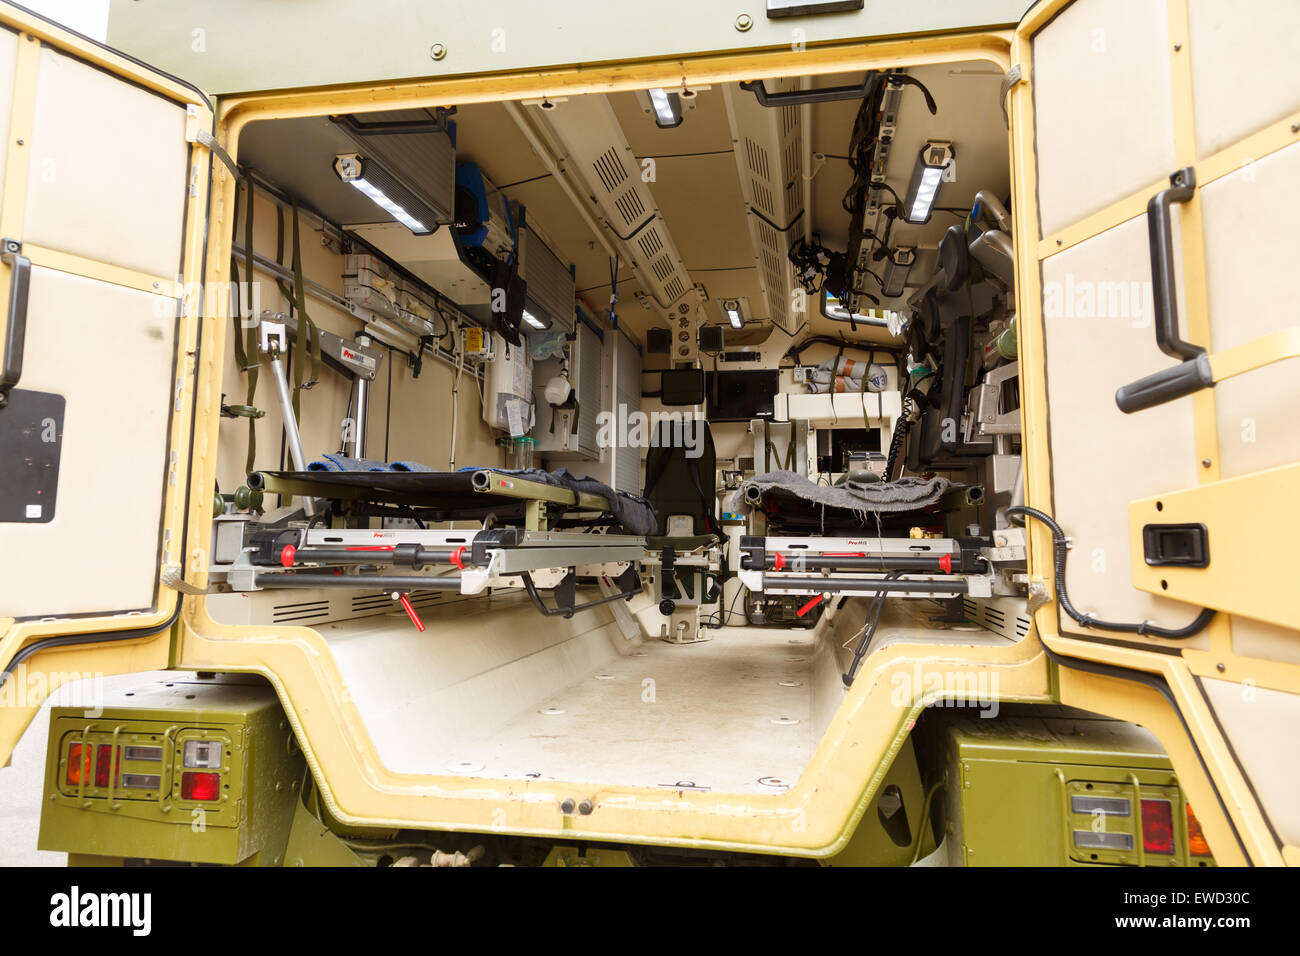 Mowag duro protected all terrain tactical vehicle in 6 6 configuration used as a